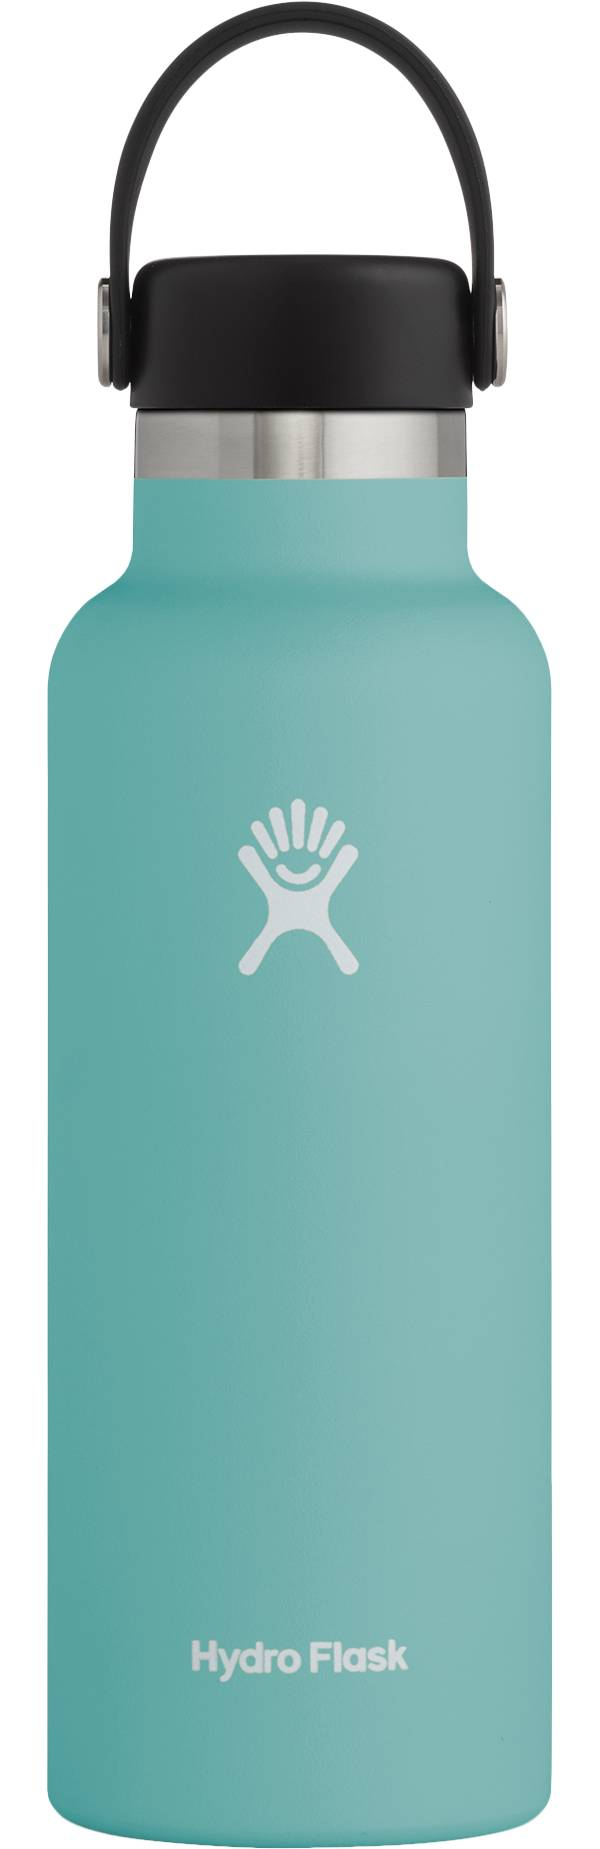 Hydro Flask Standard Mouth 18 oz. Bottle product image